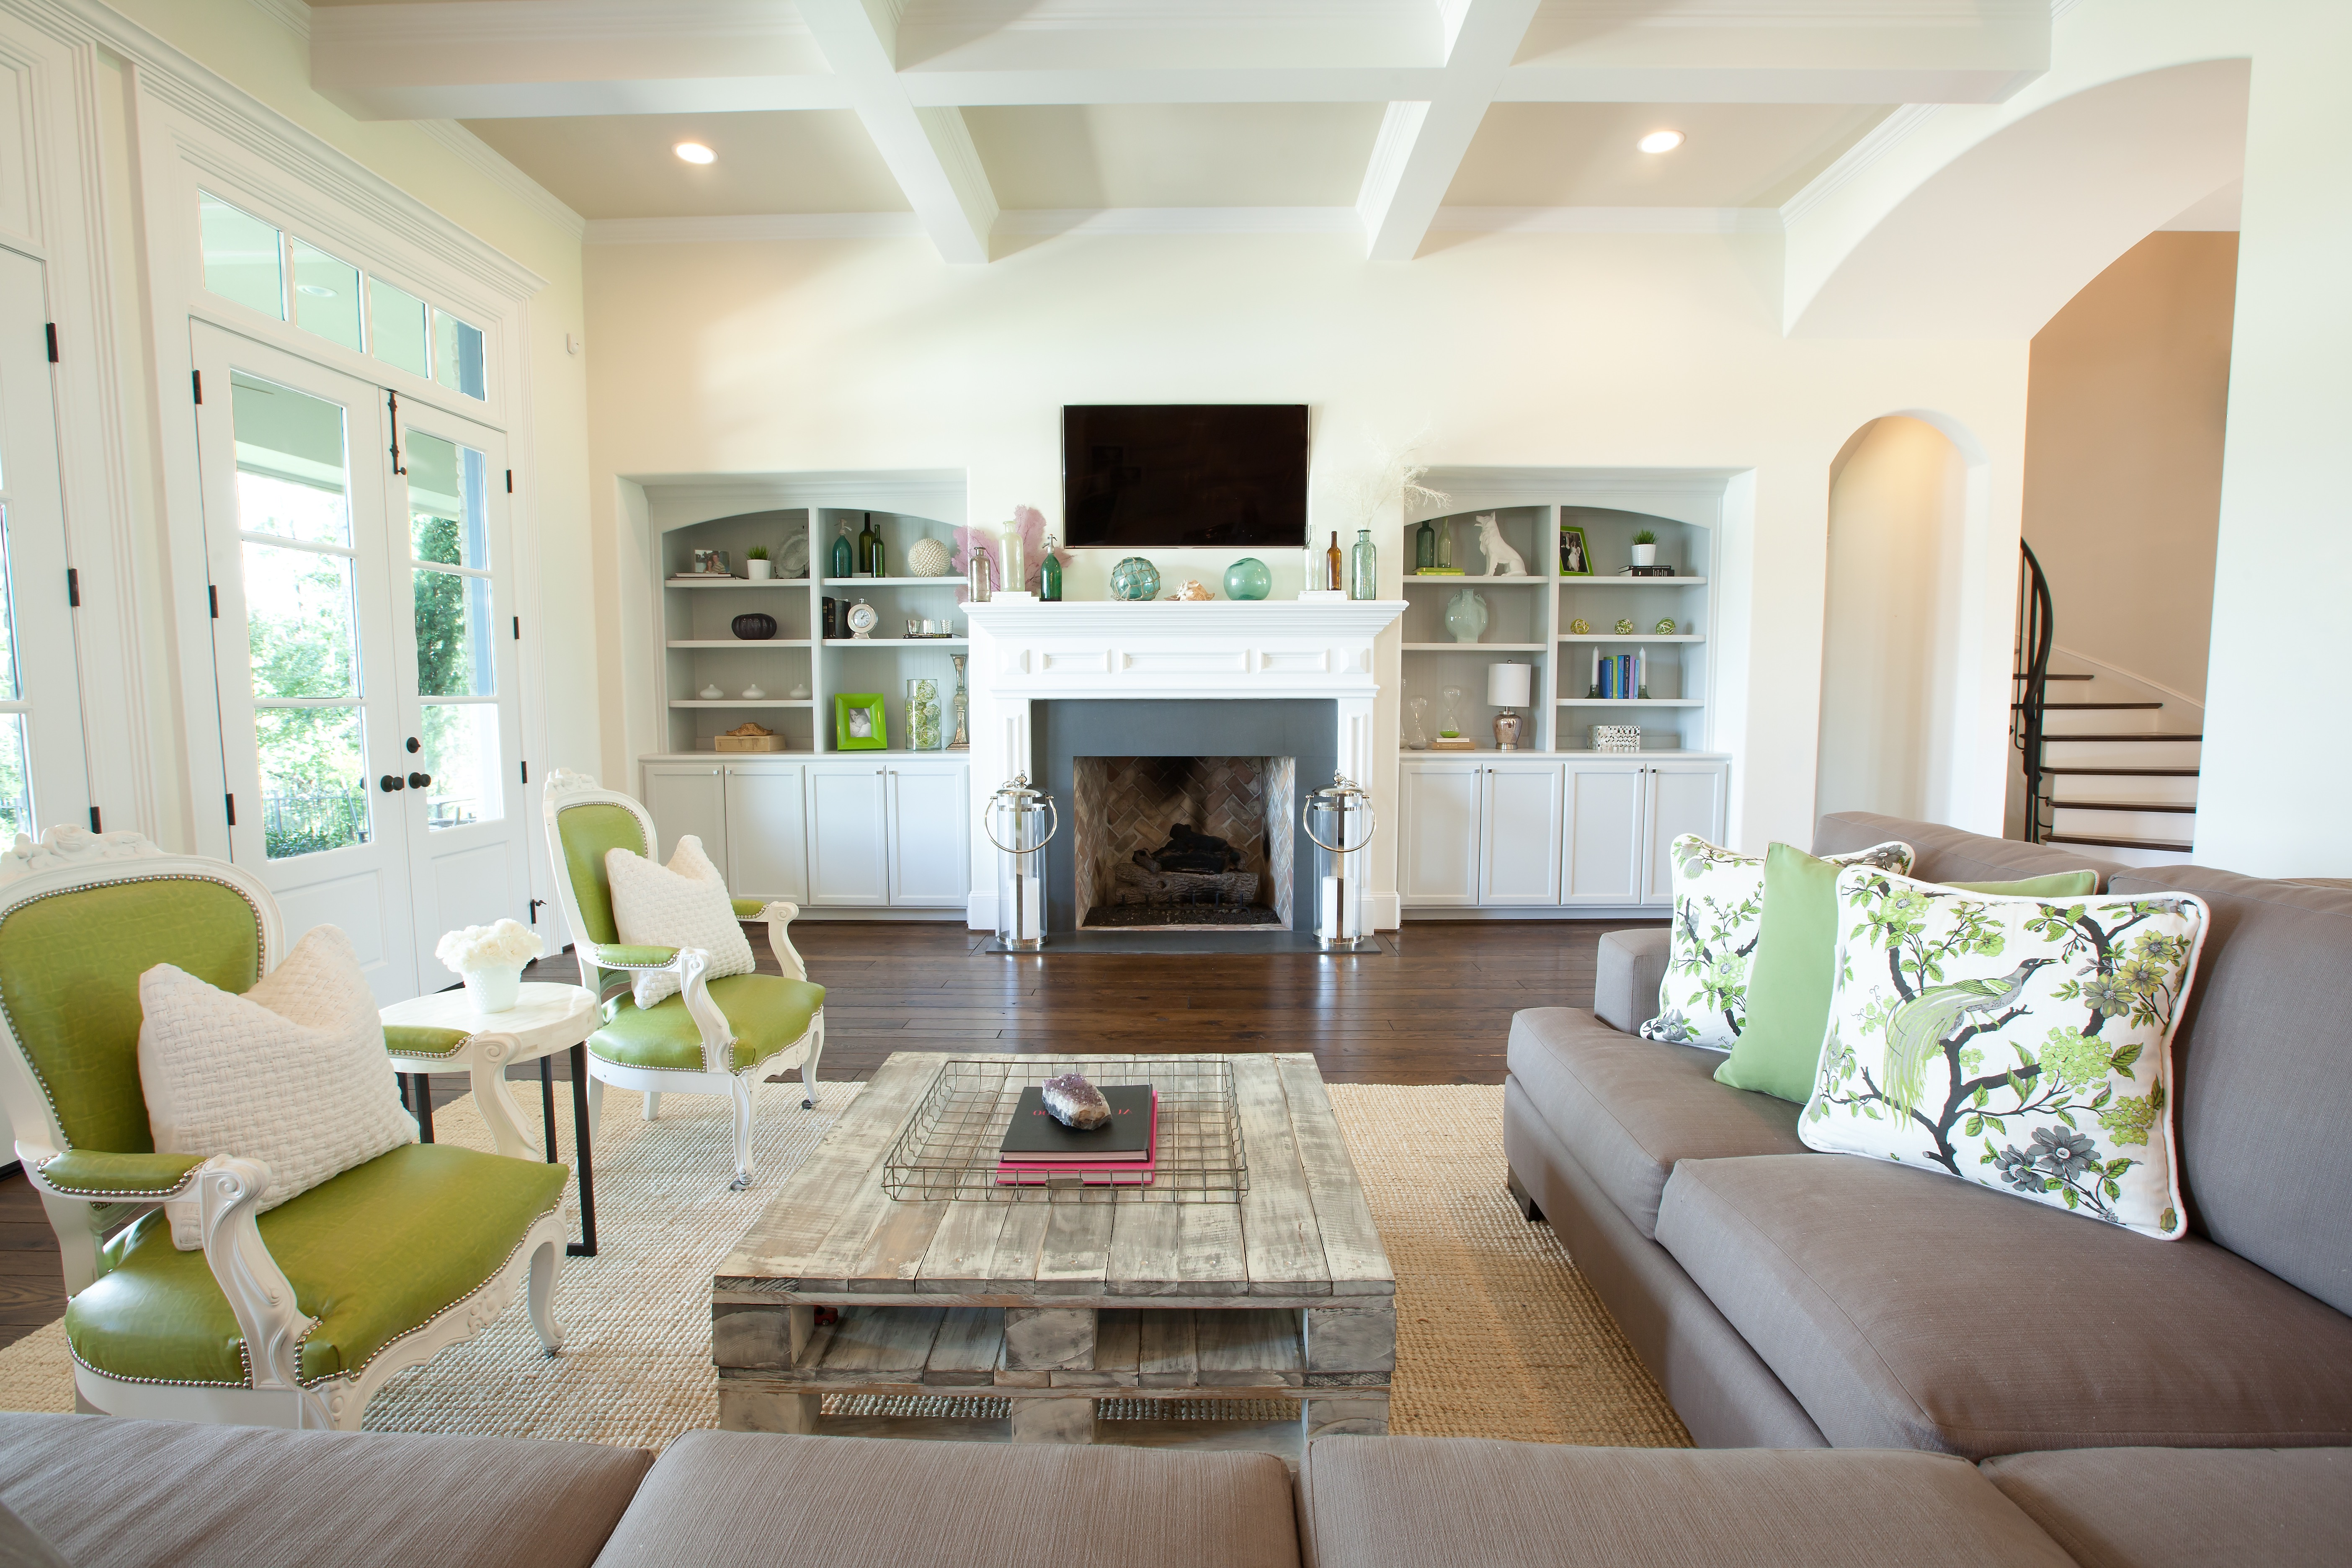 Western Living Room In Bright White Color Scheme (Image 13 of 18)